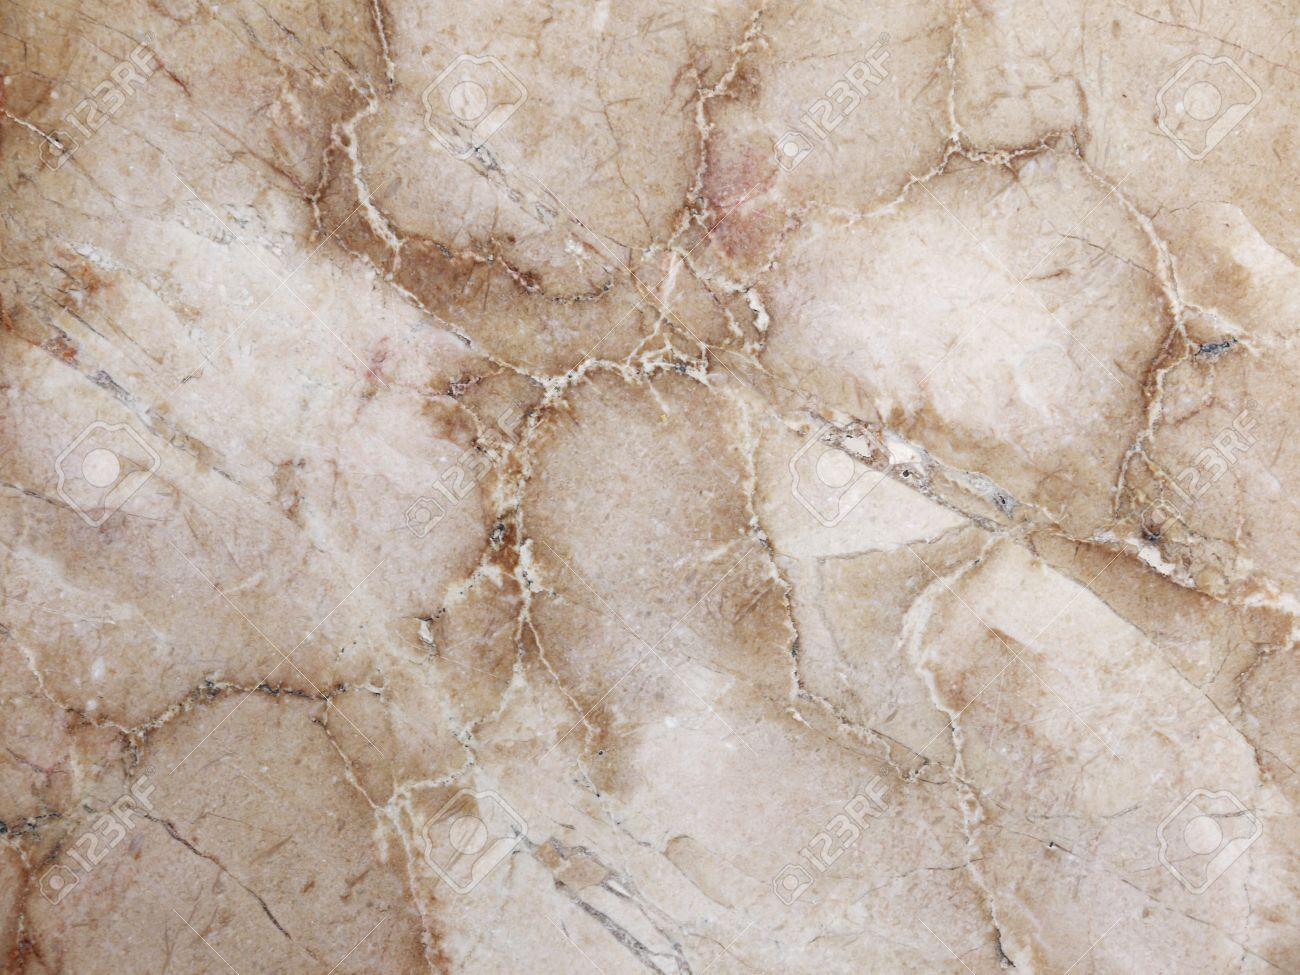 Brown Marble Texture Background High Resolution Scan Stock Photo Picture And Royalty Free Image Image 60166444